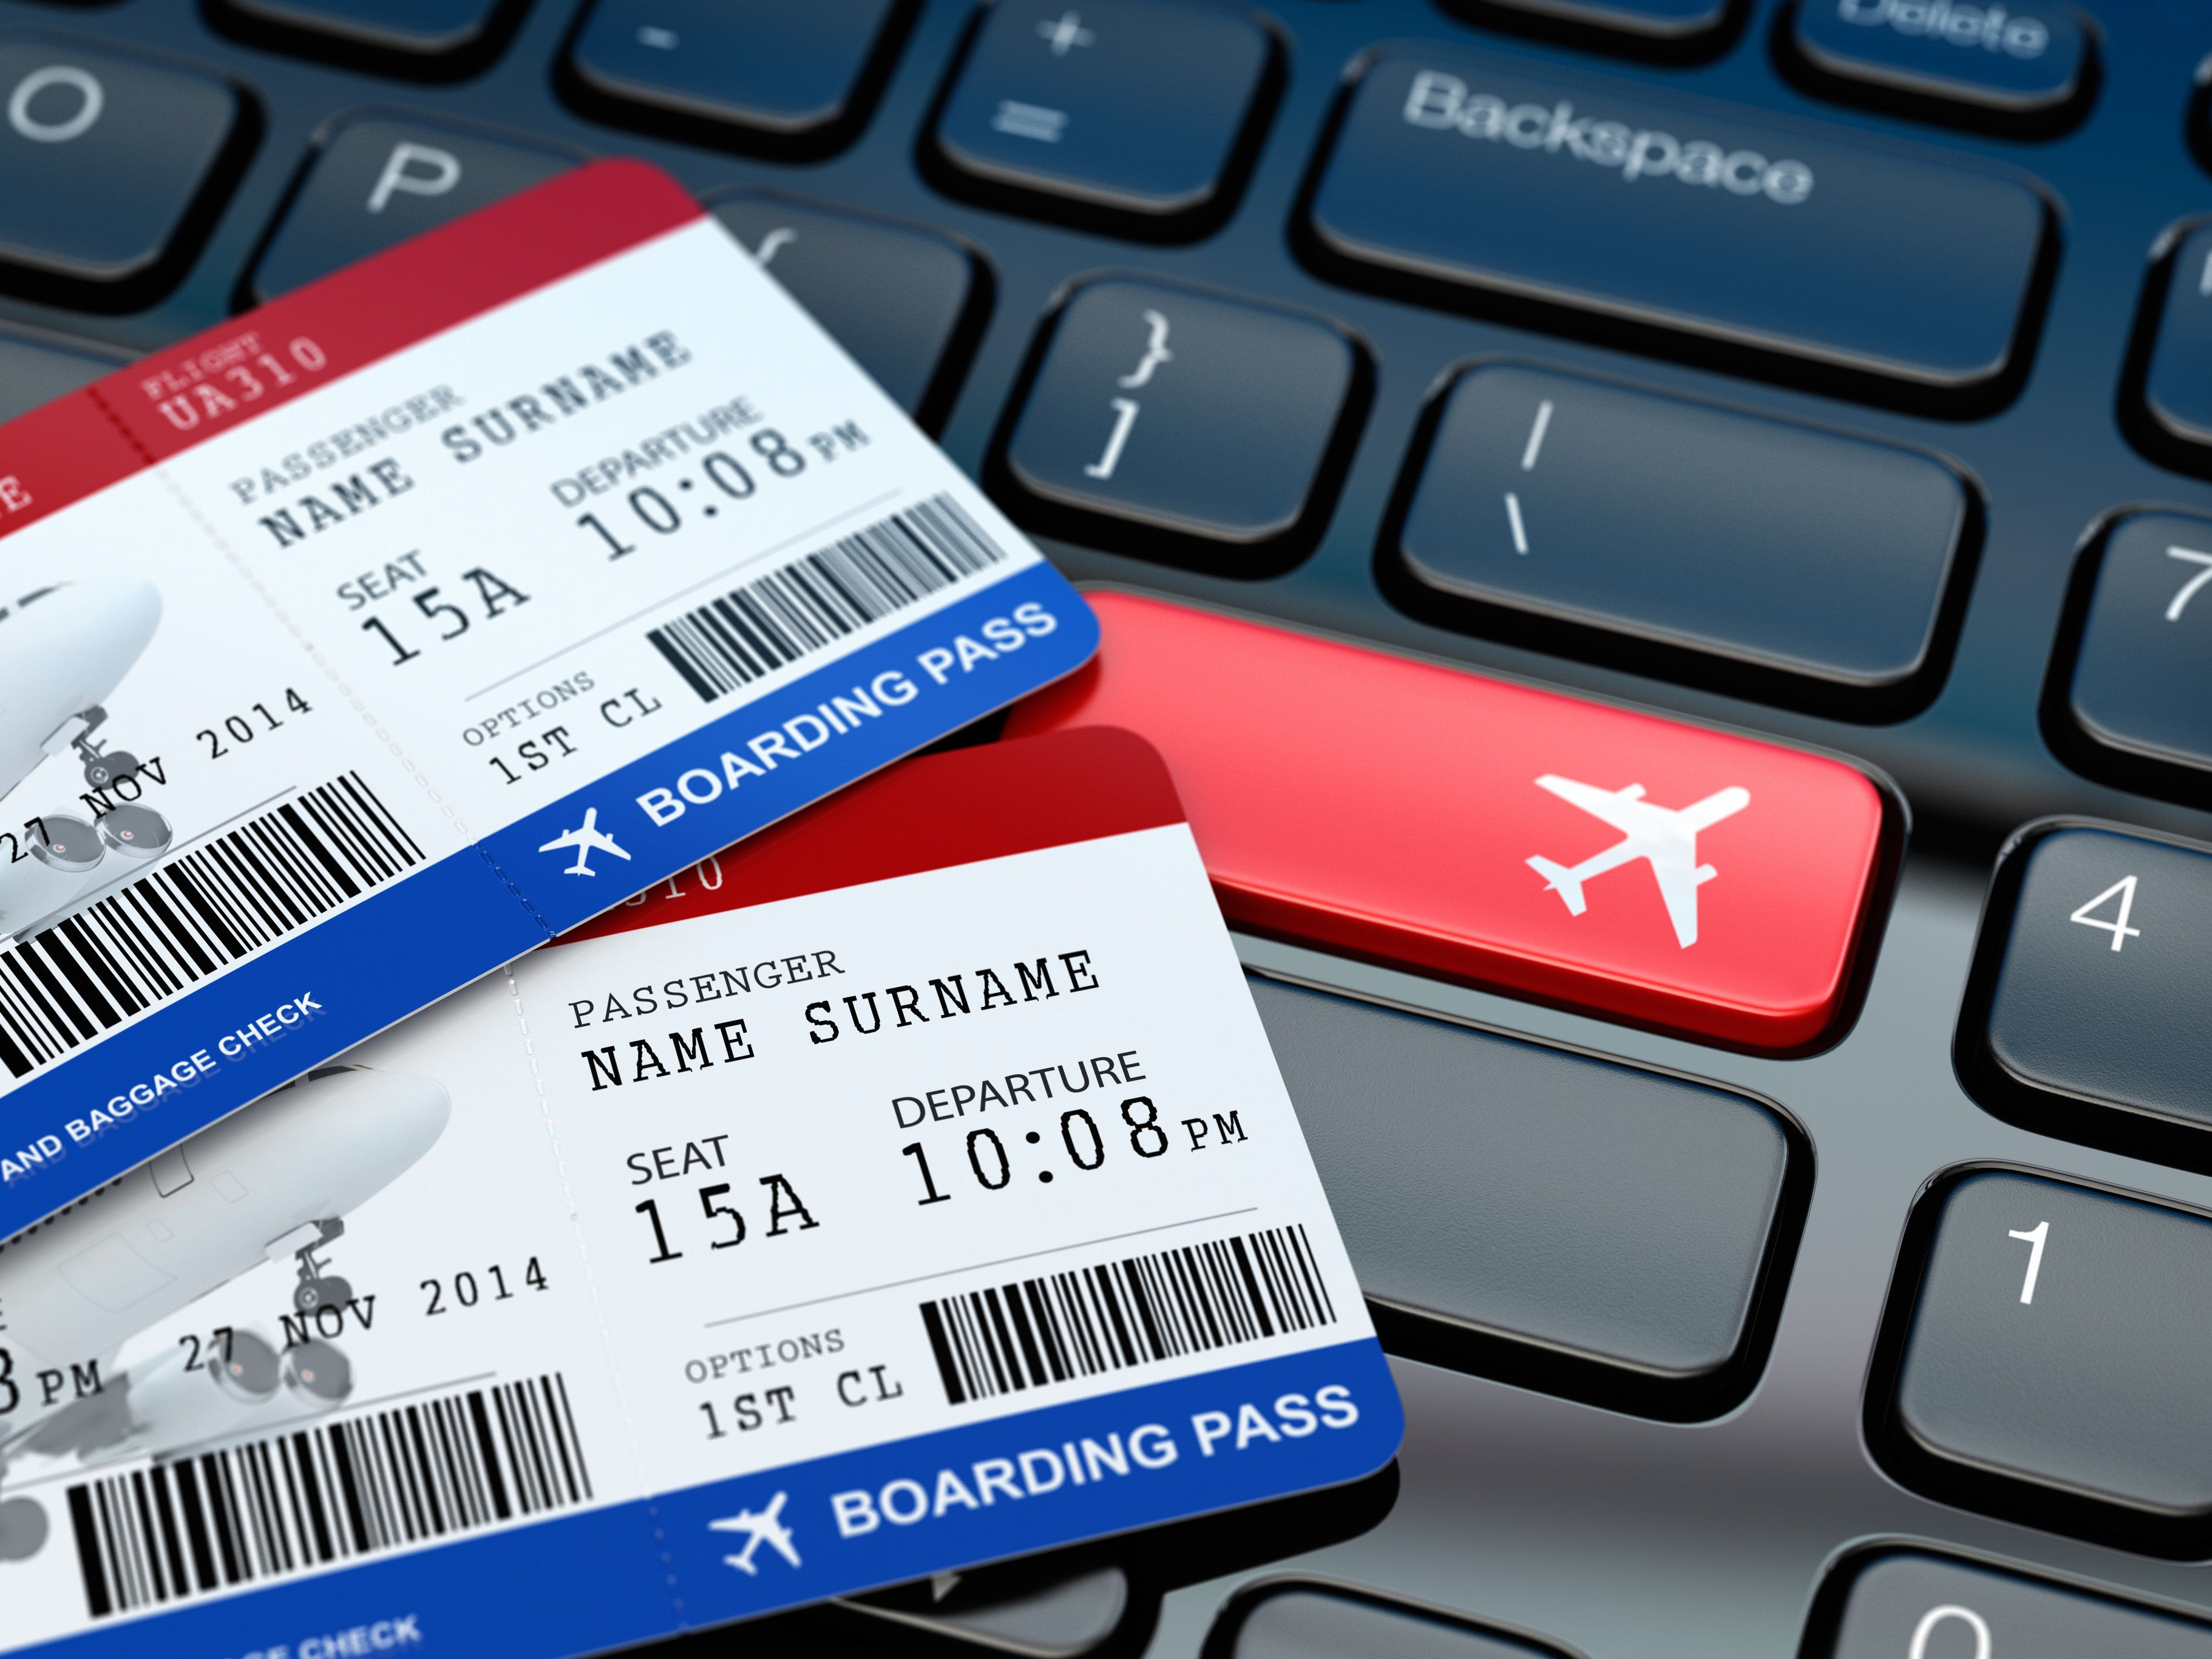 The Best Time To Book A Plane Ticket According New Study